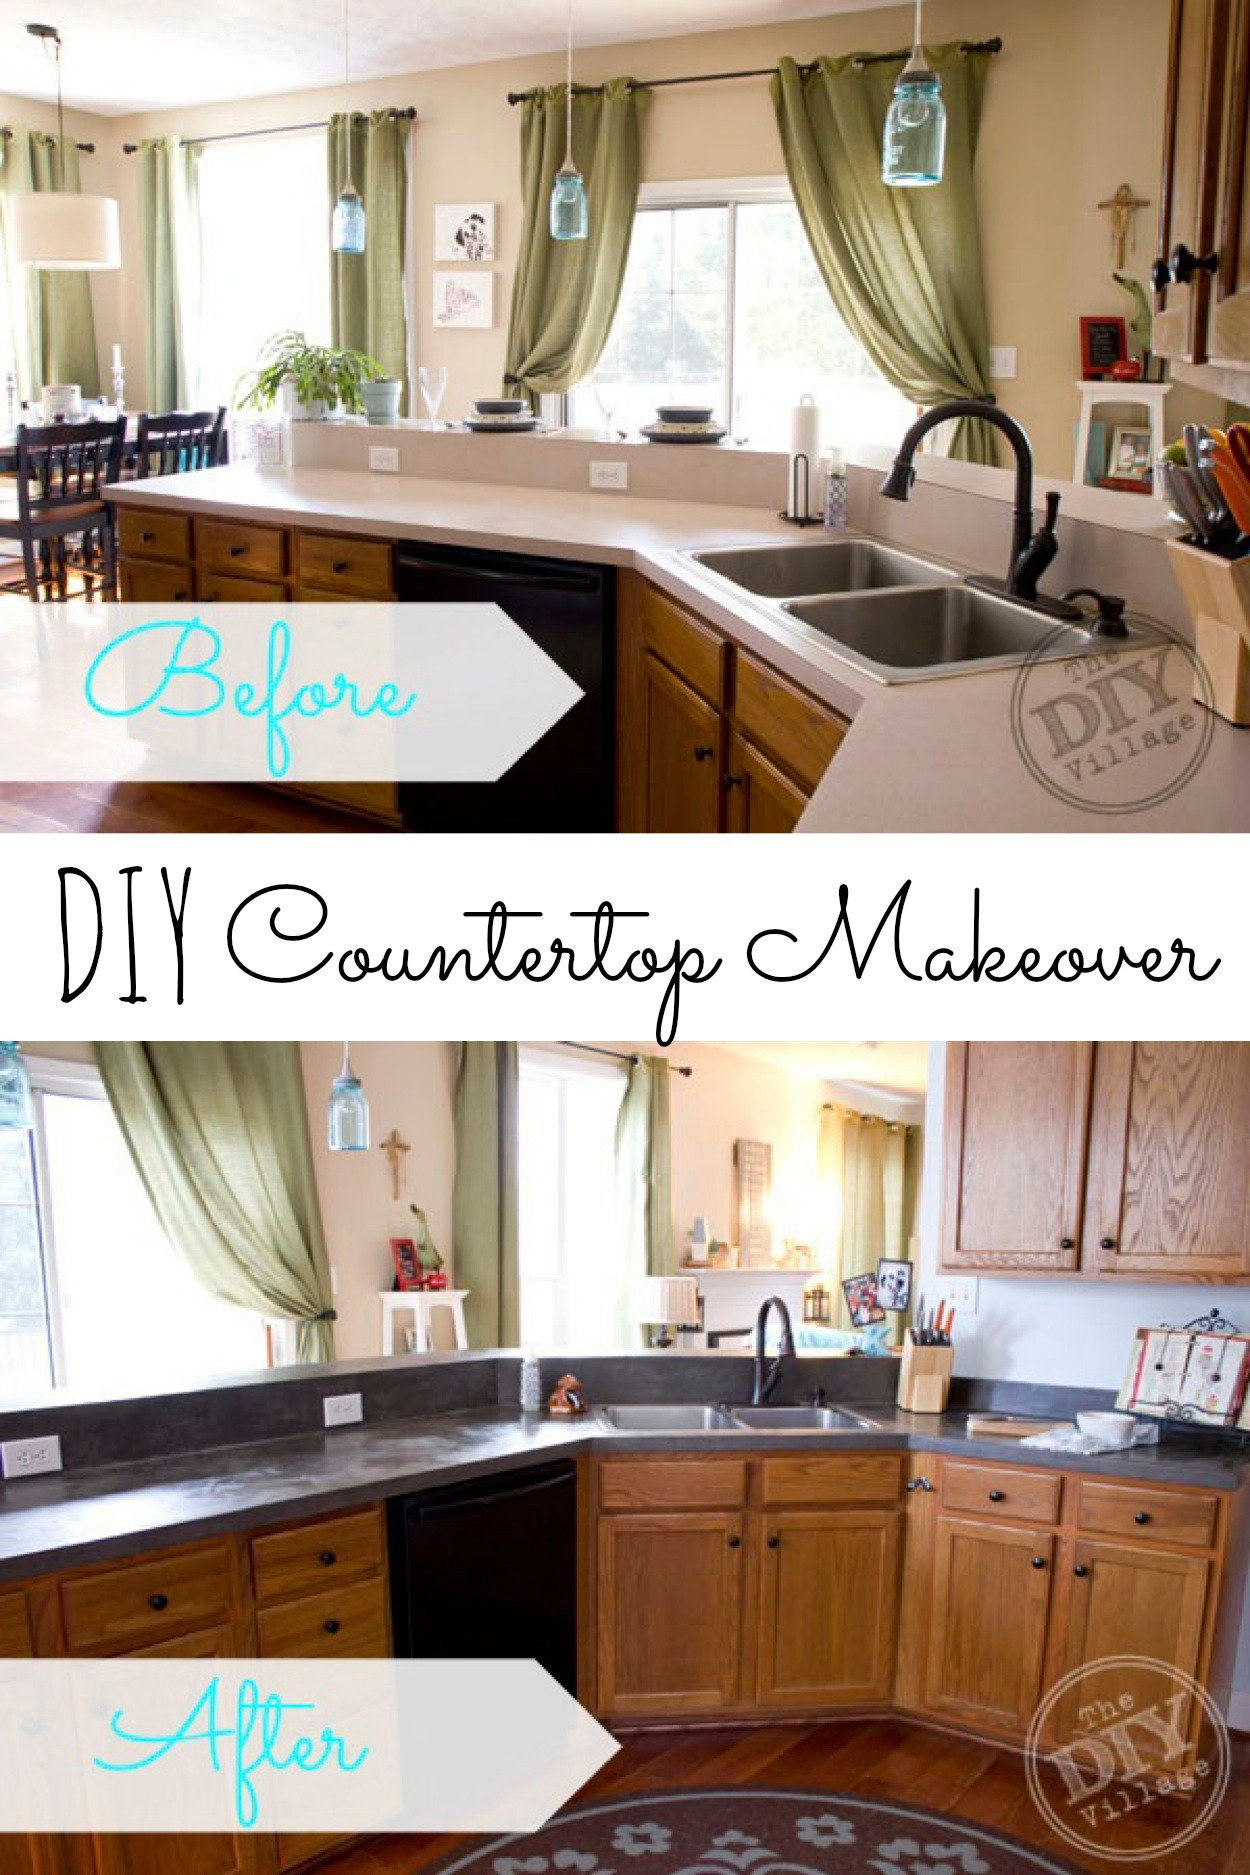 9 diy countertop makeovers diy concrete countertop yes please great diy countertop makeovers that are doable and affordable solutioingenieria Images